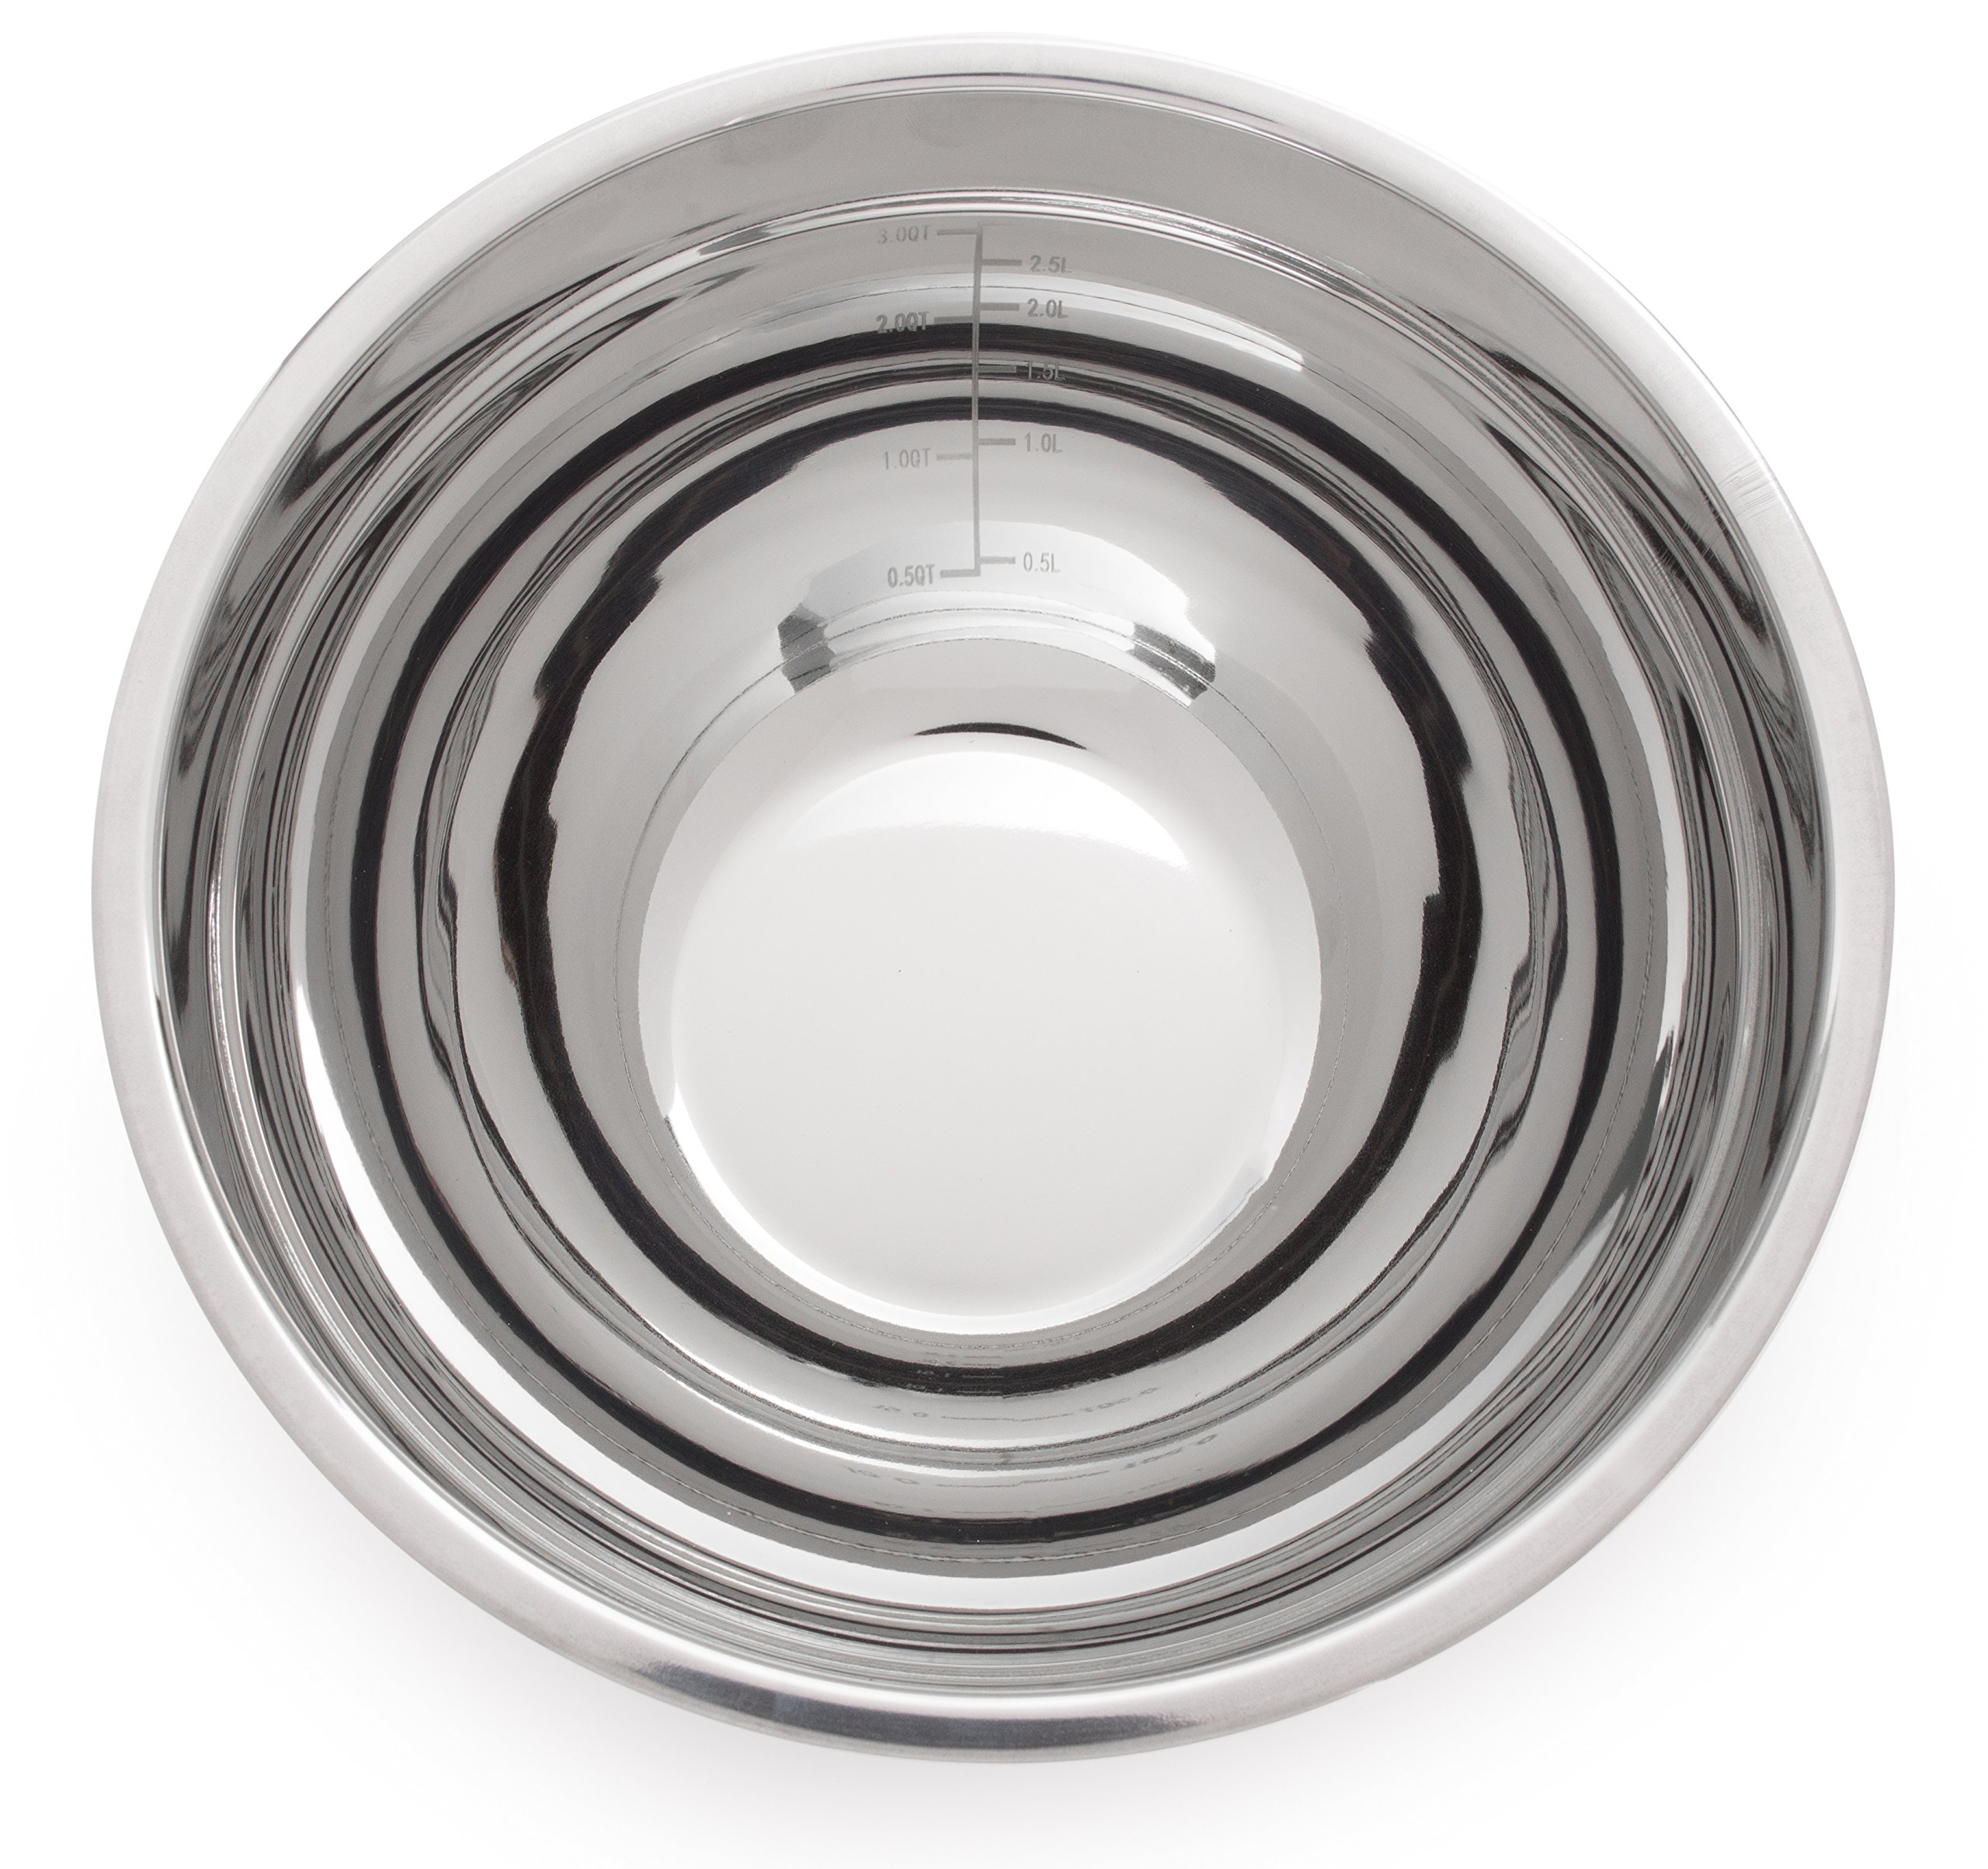 +Steel Stainless Steel Non-Slip Mixing Bowl Set of 4 with Lids and Whisk by +Steel (Image #3)